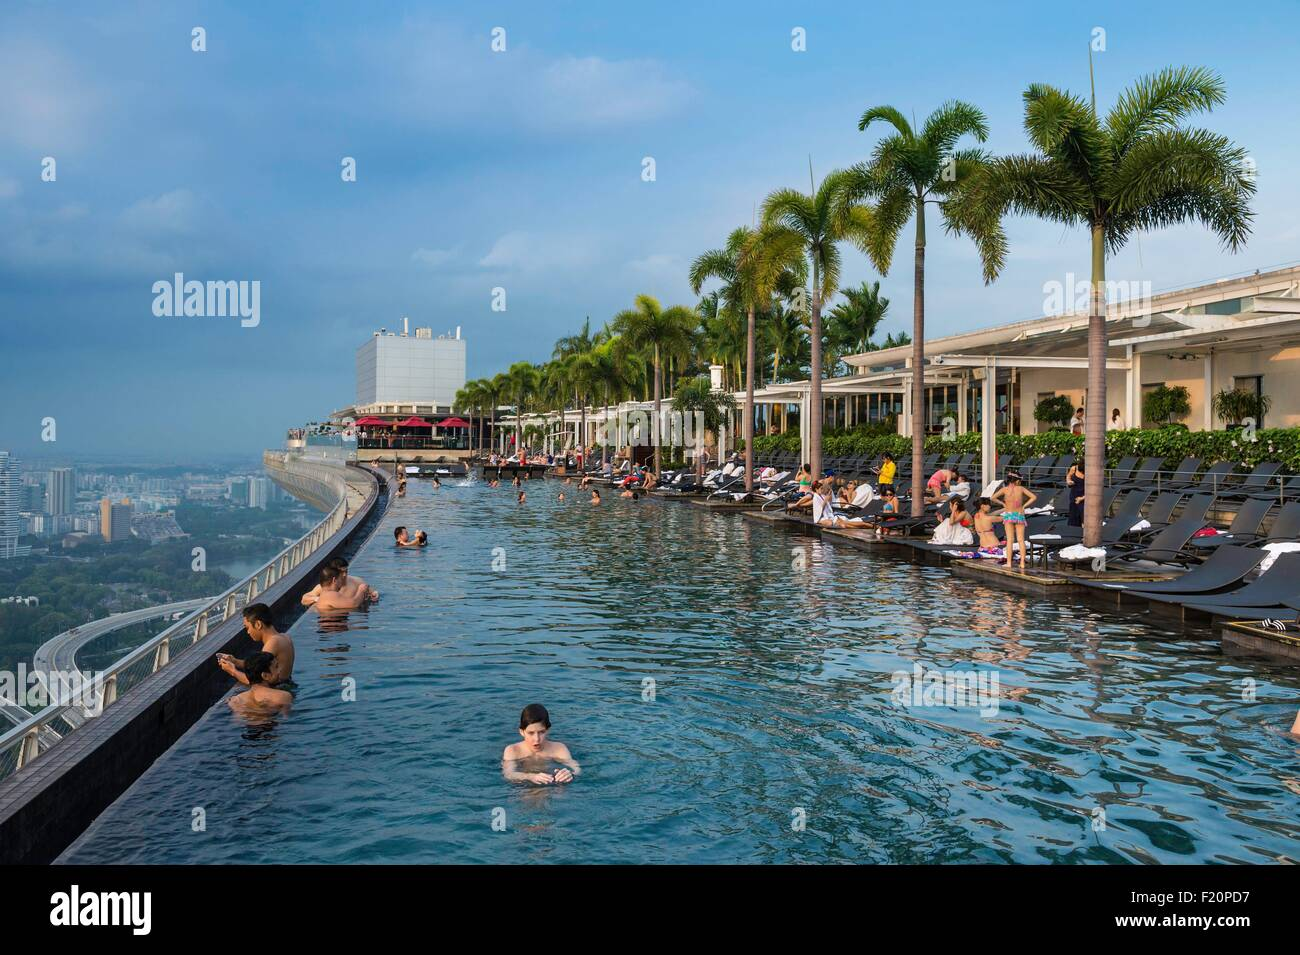 Singapore marina bay swimming pool on the rooftop of marina bay stock photo royalty free - Marina bay sands resort singapore swimming pool ...